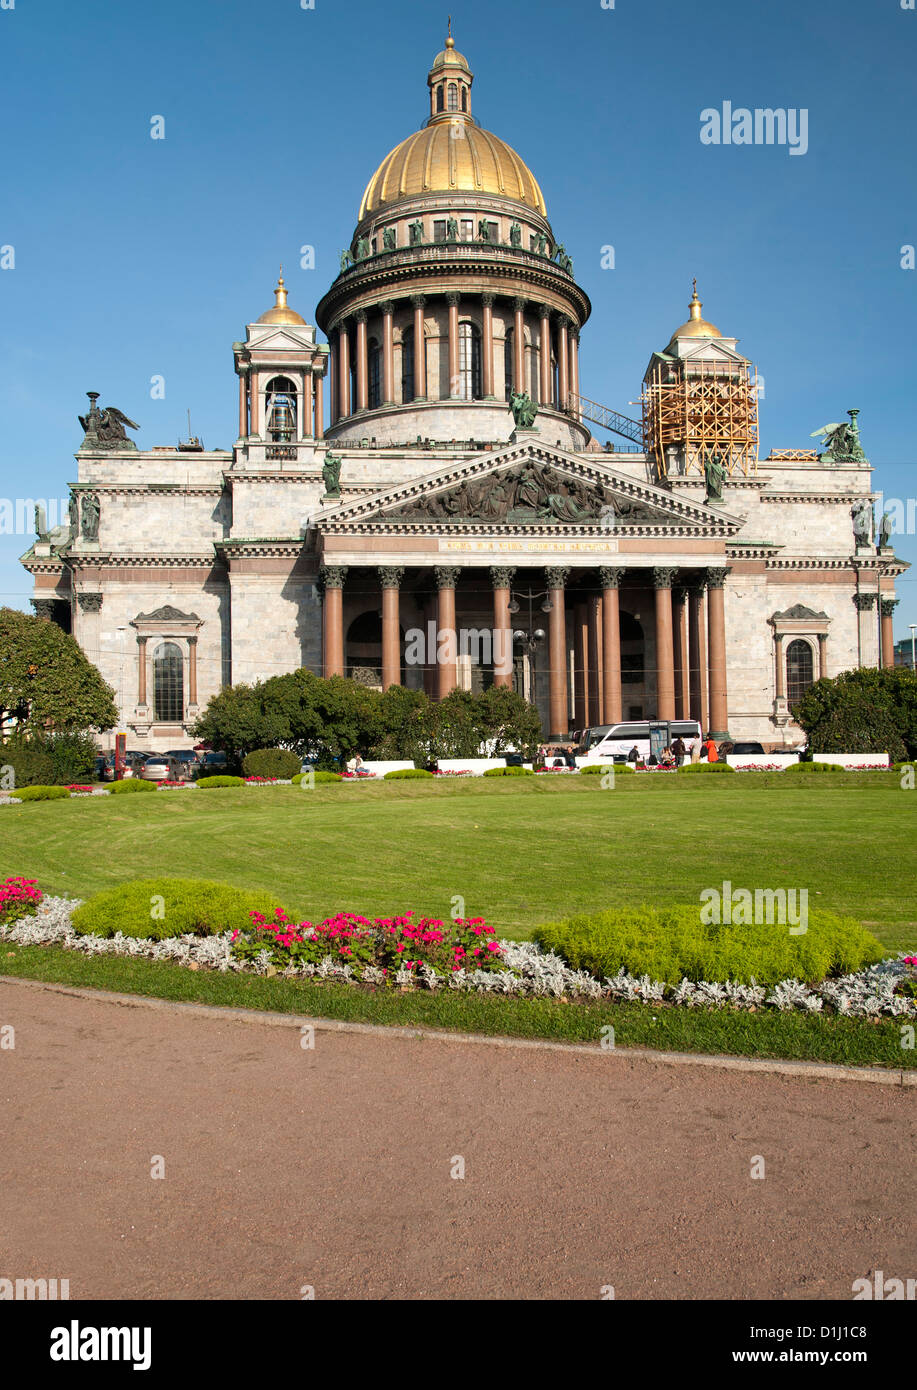 St Isaac's Cathedral in Saint Petersburg, Russia. - Stock Image